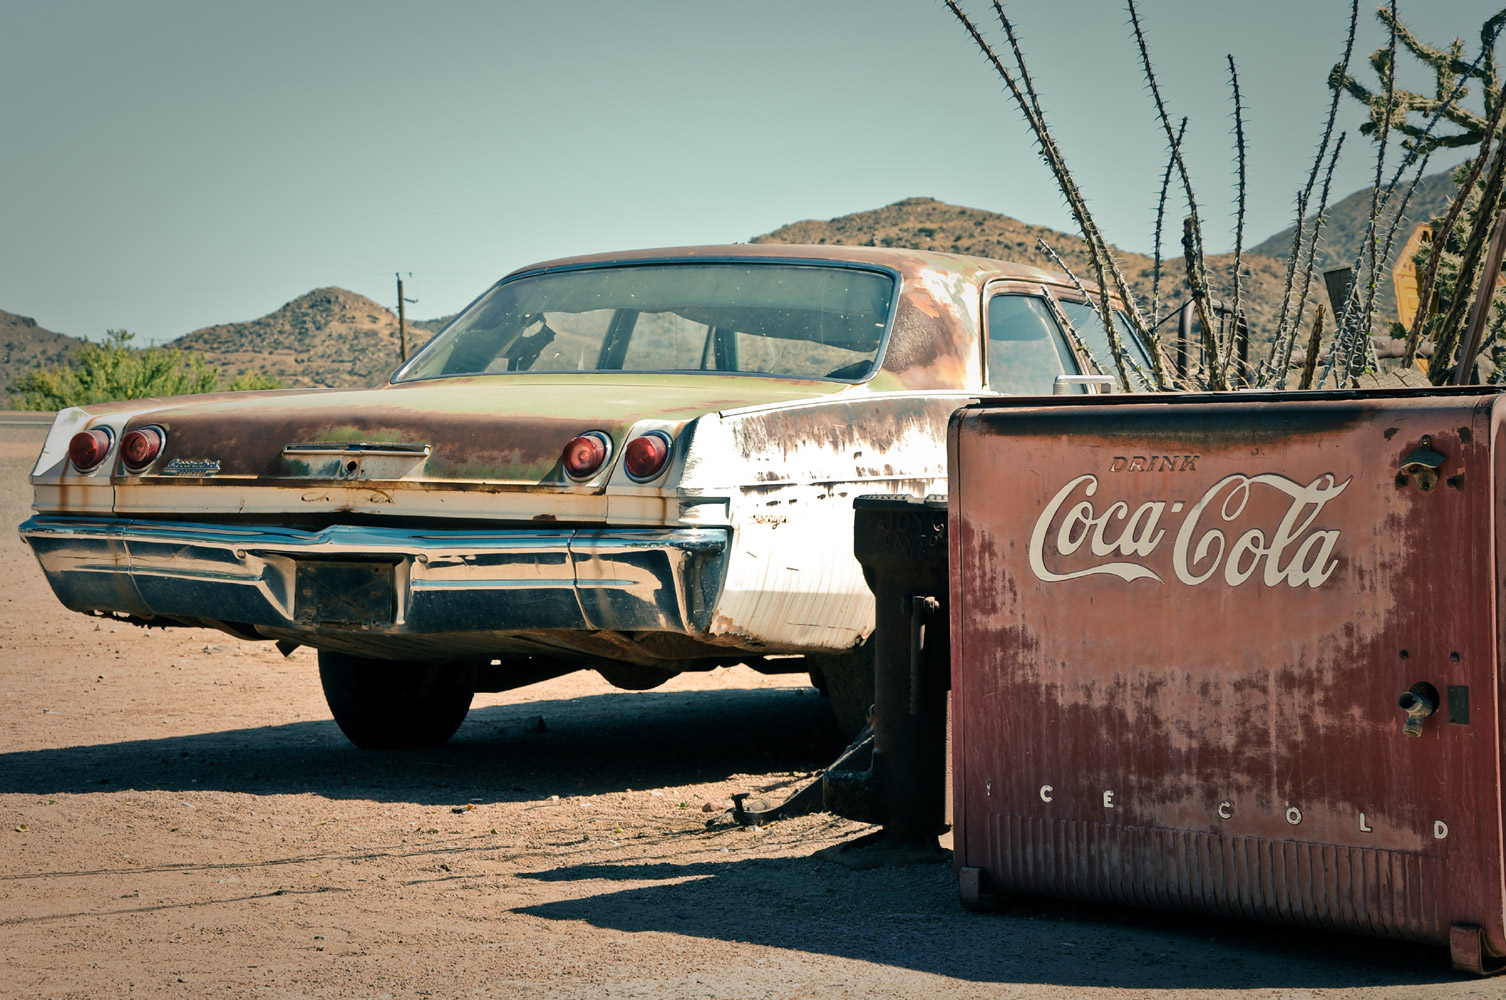 Route 66 - Arizona, 2011